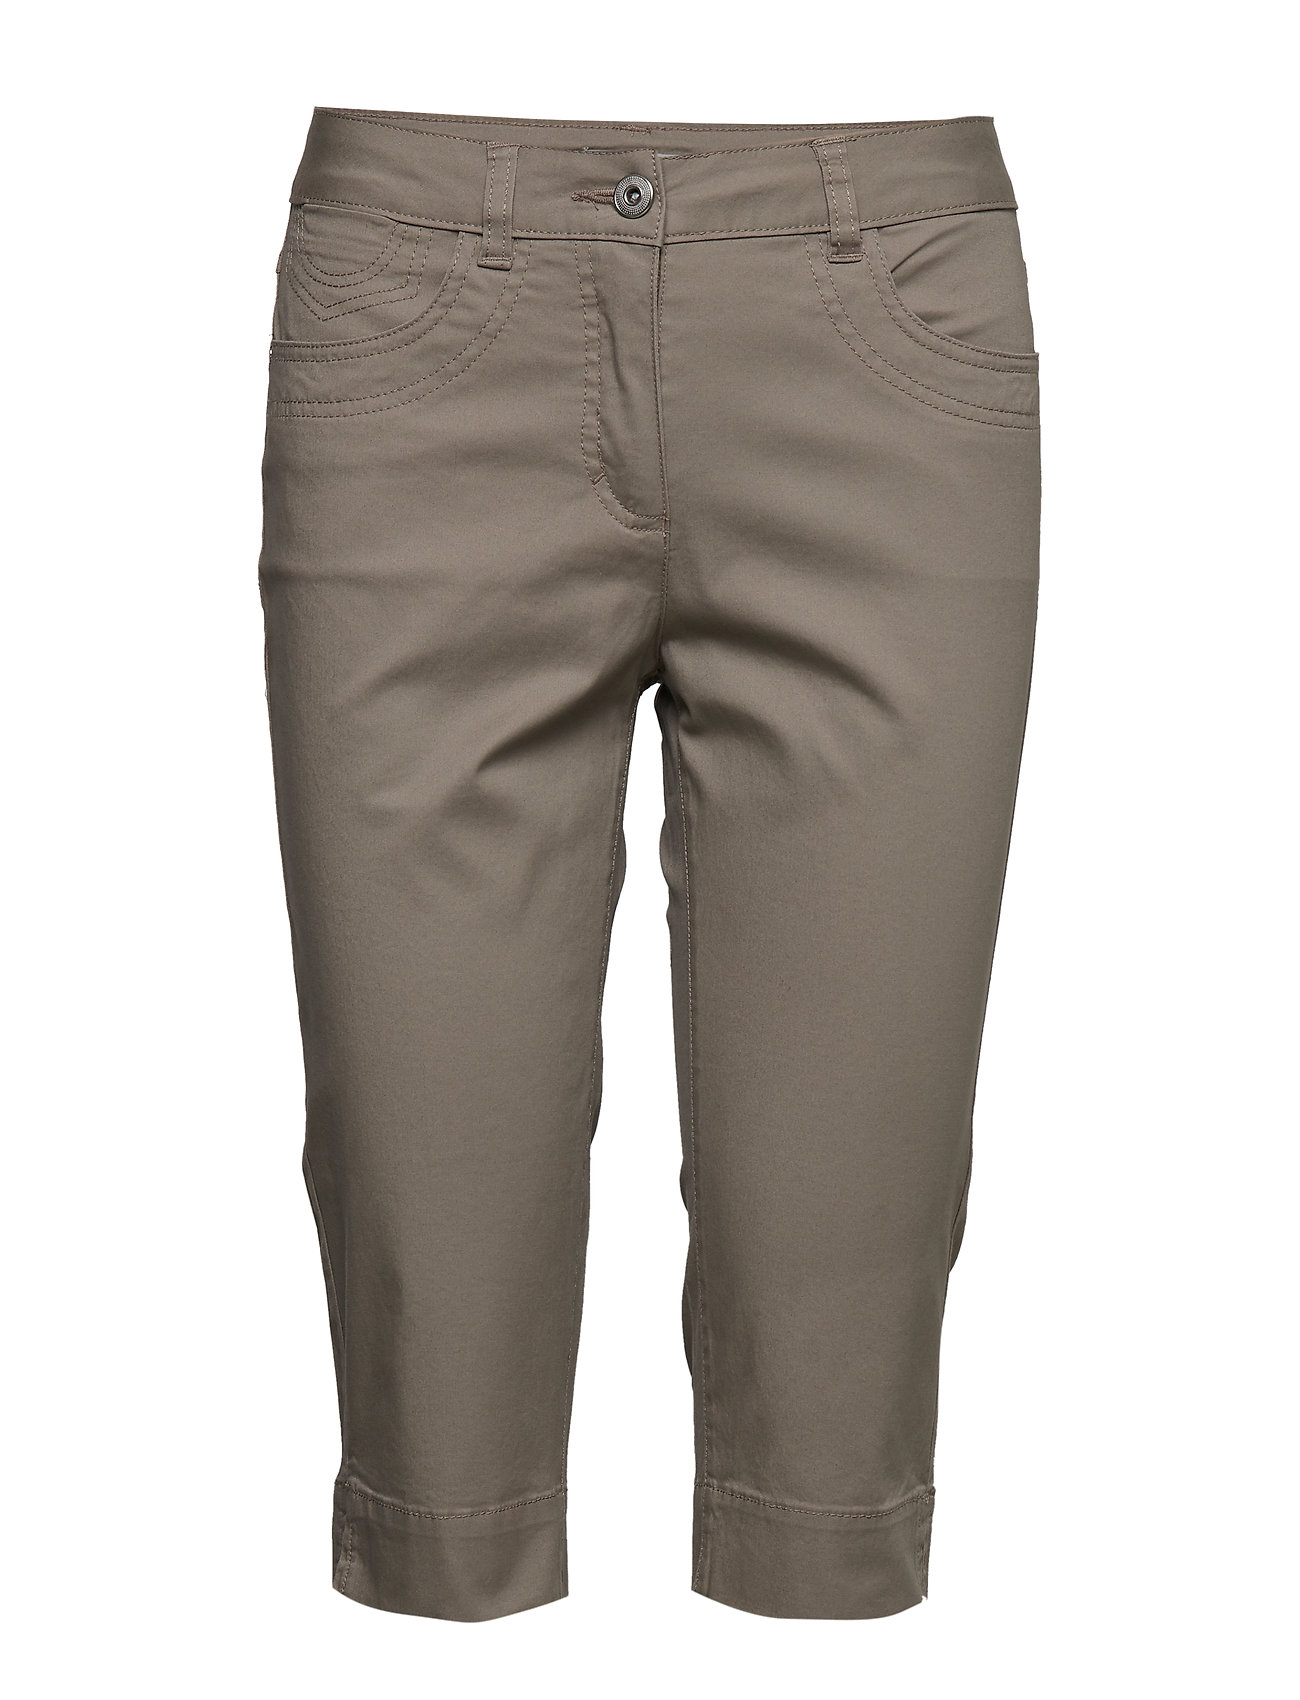 Brandtex Capri pants